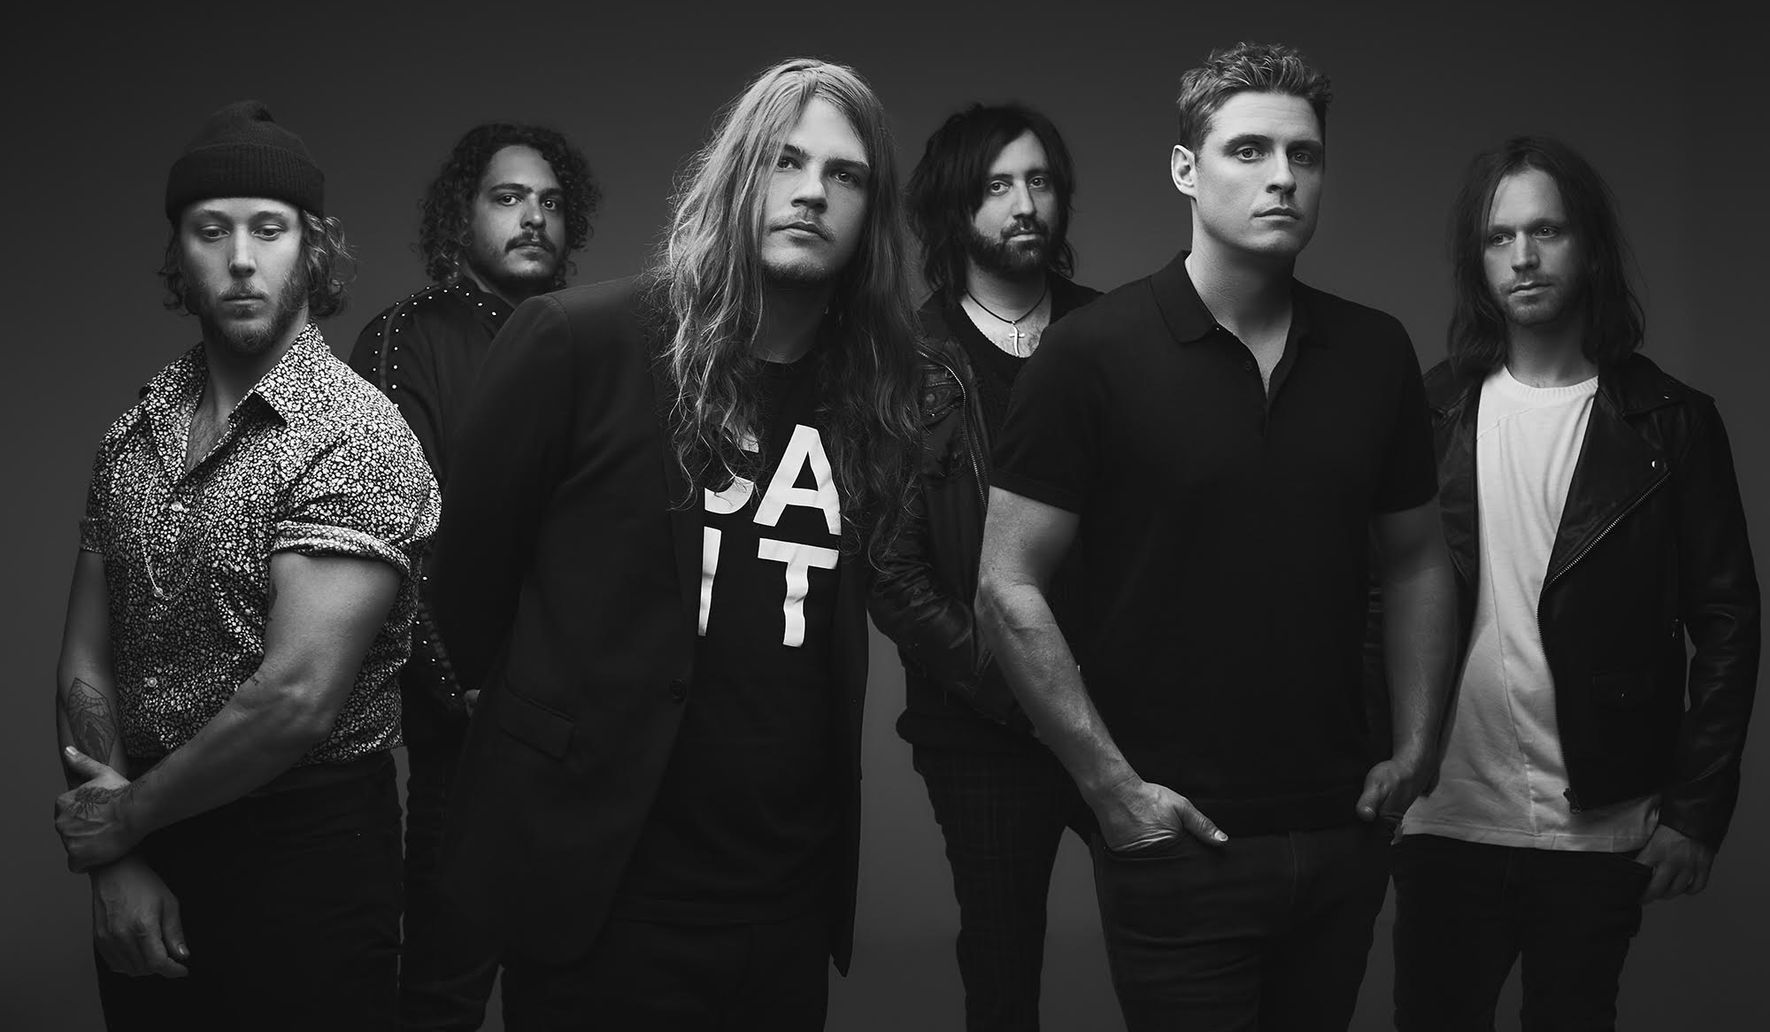 Canada's best export: The Glorious Sons